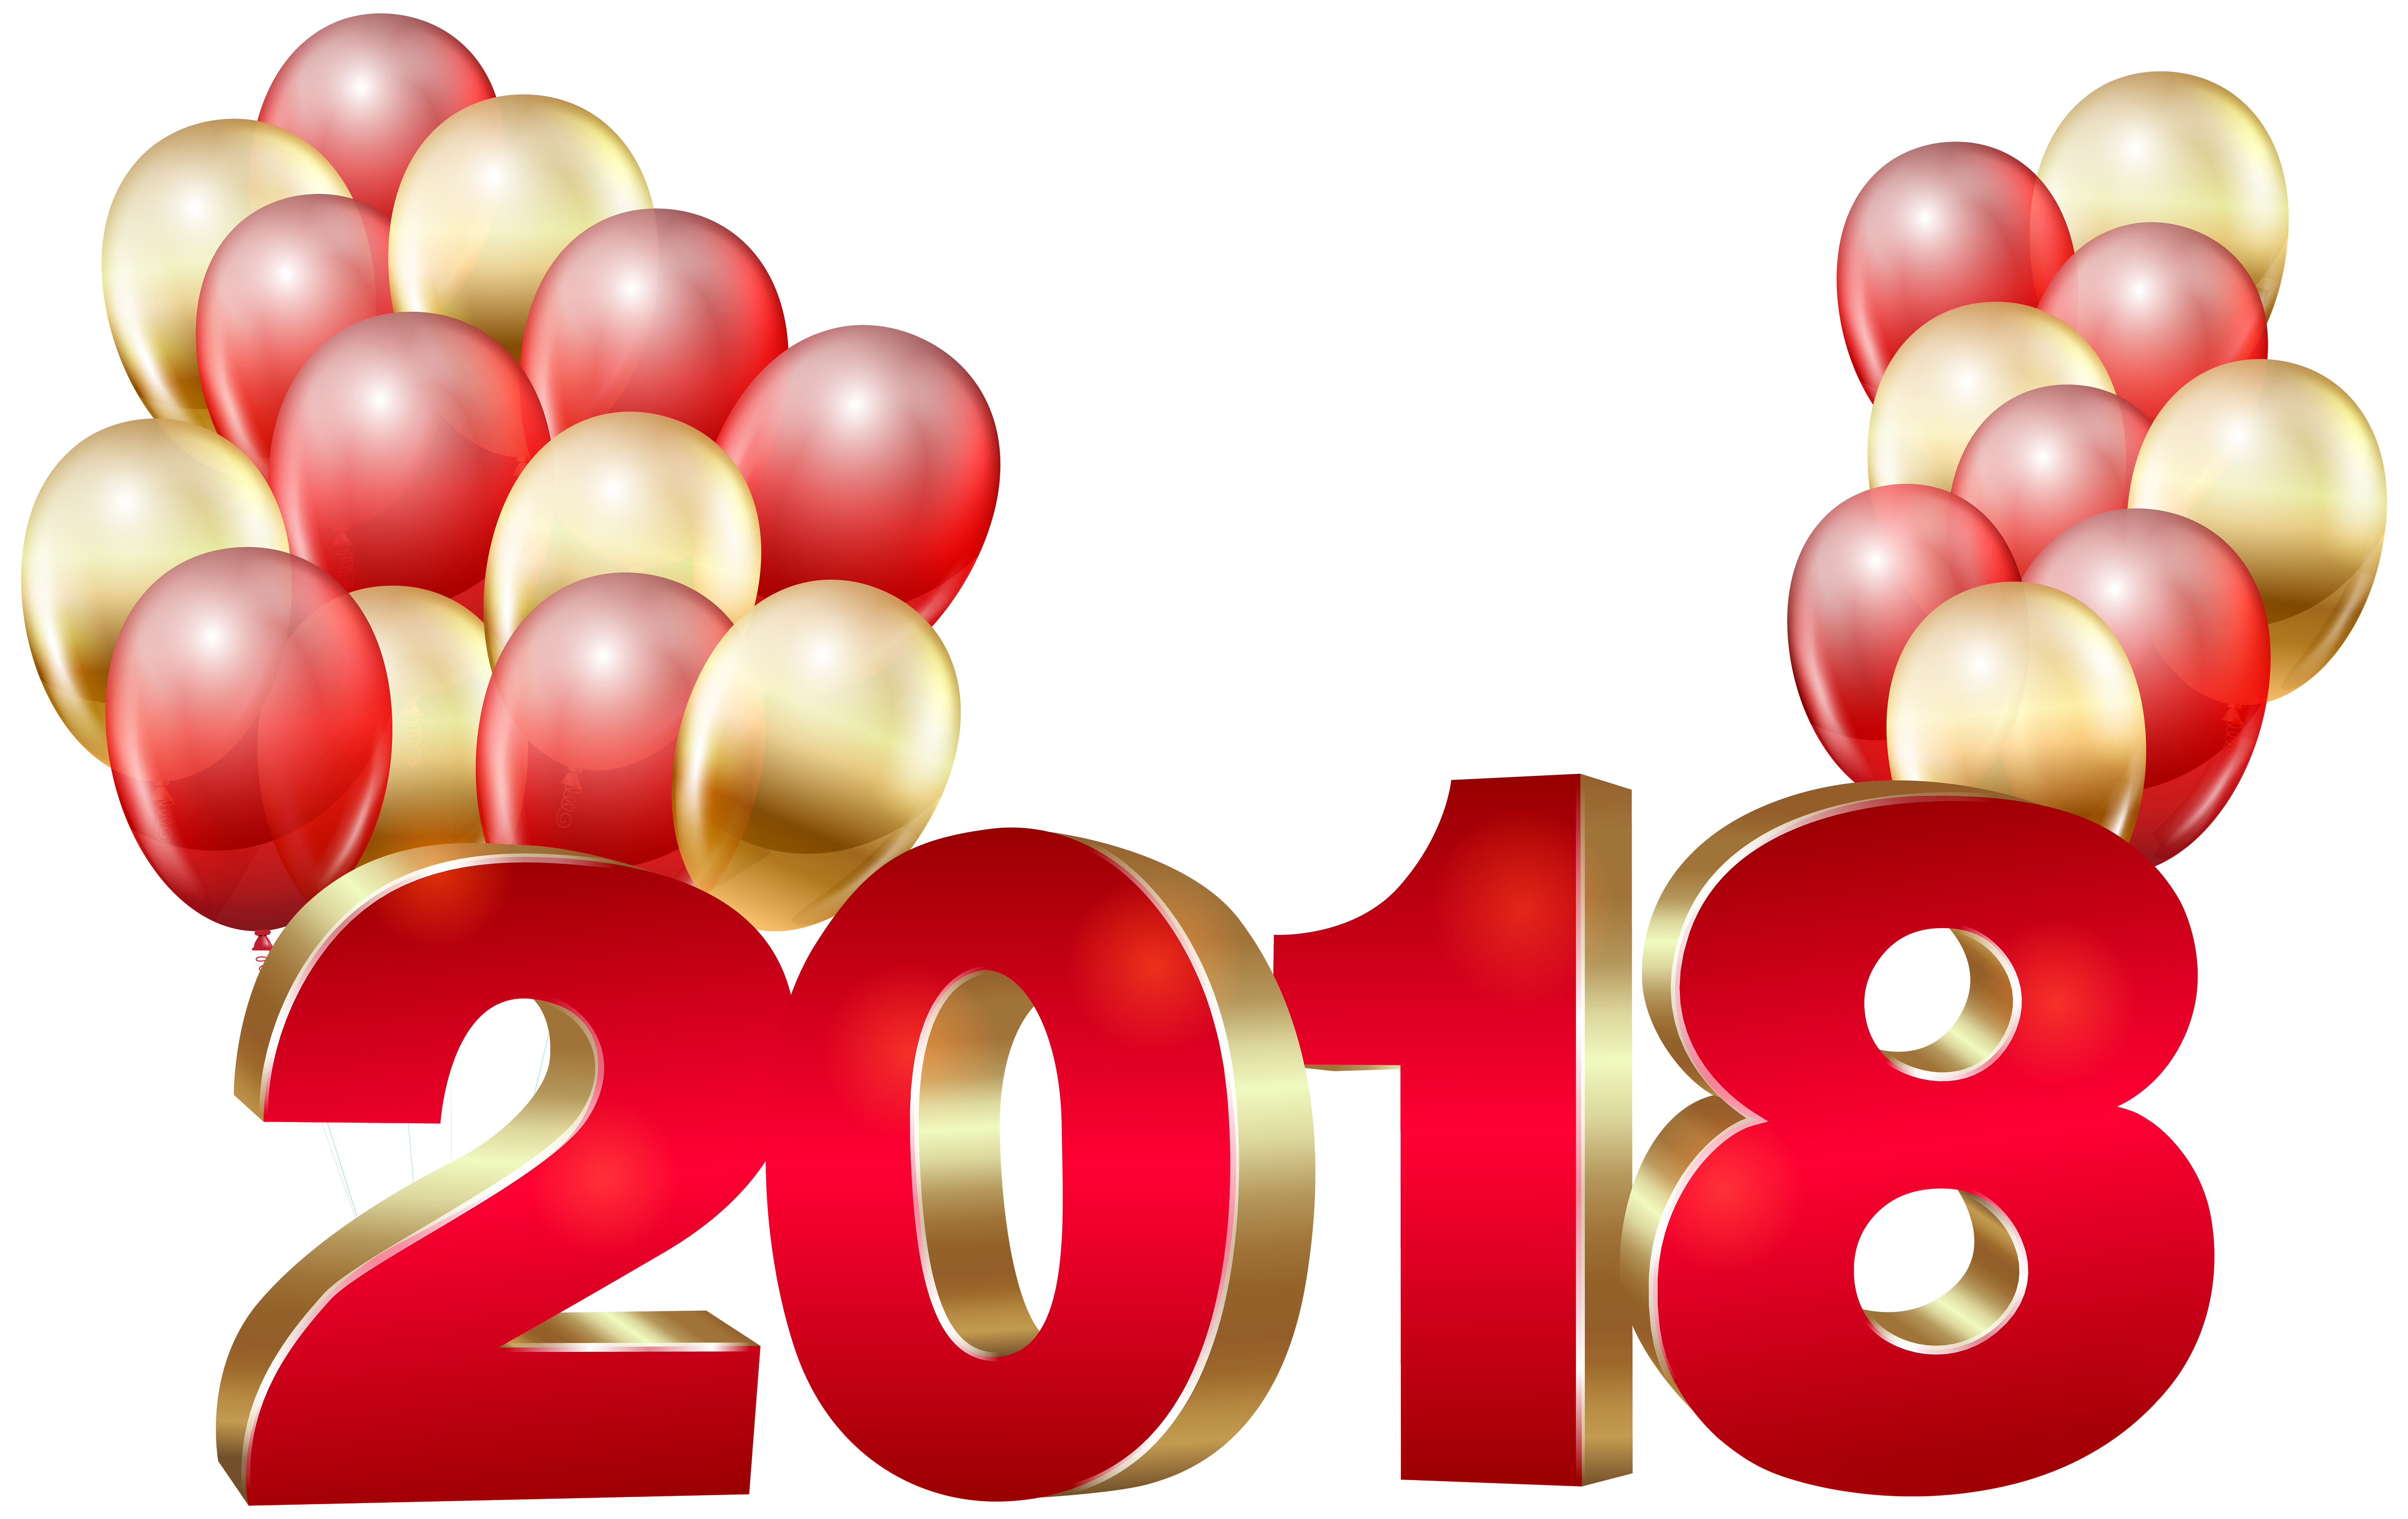 2018 clipart jpg library download Pin by LadyT . on NEW YEAR - HAVE A HAPPY ONE | Art images ... jpg library download